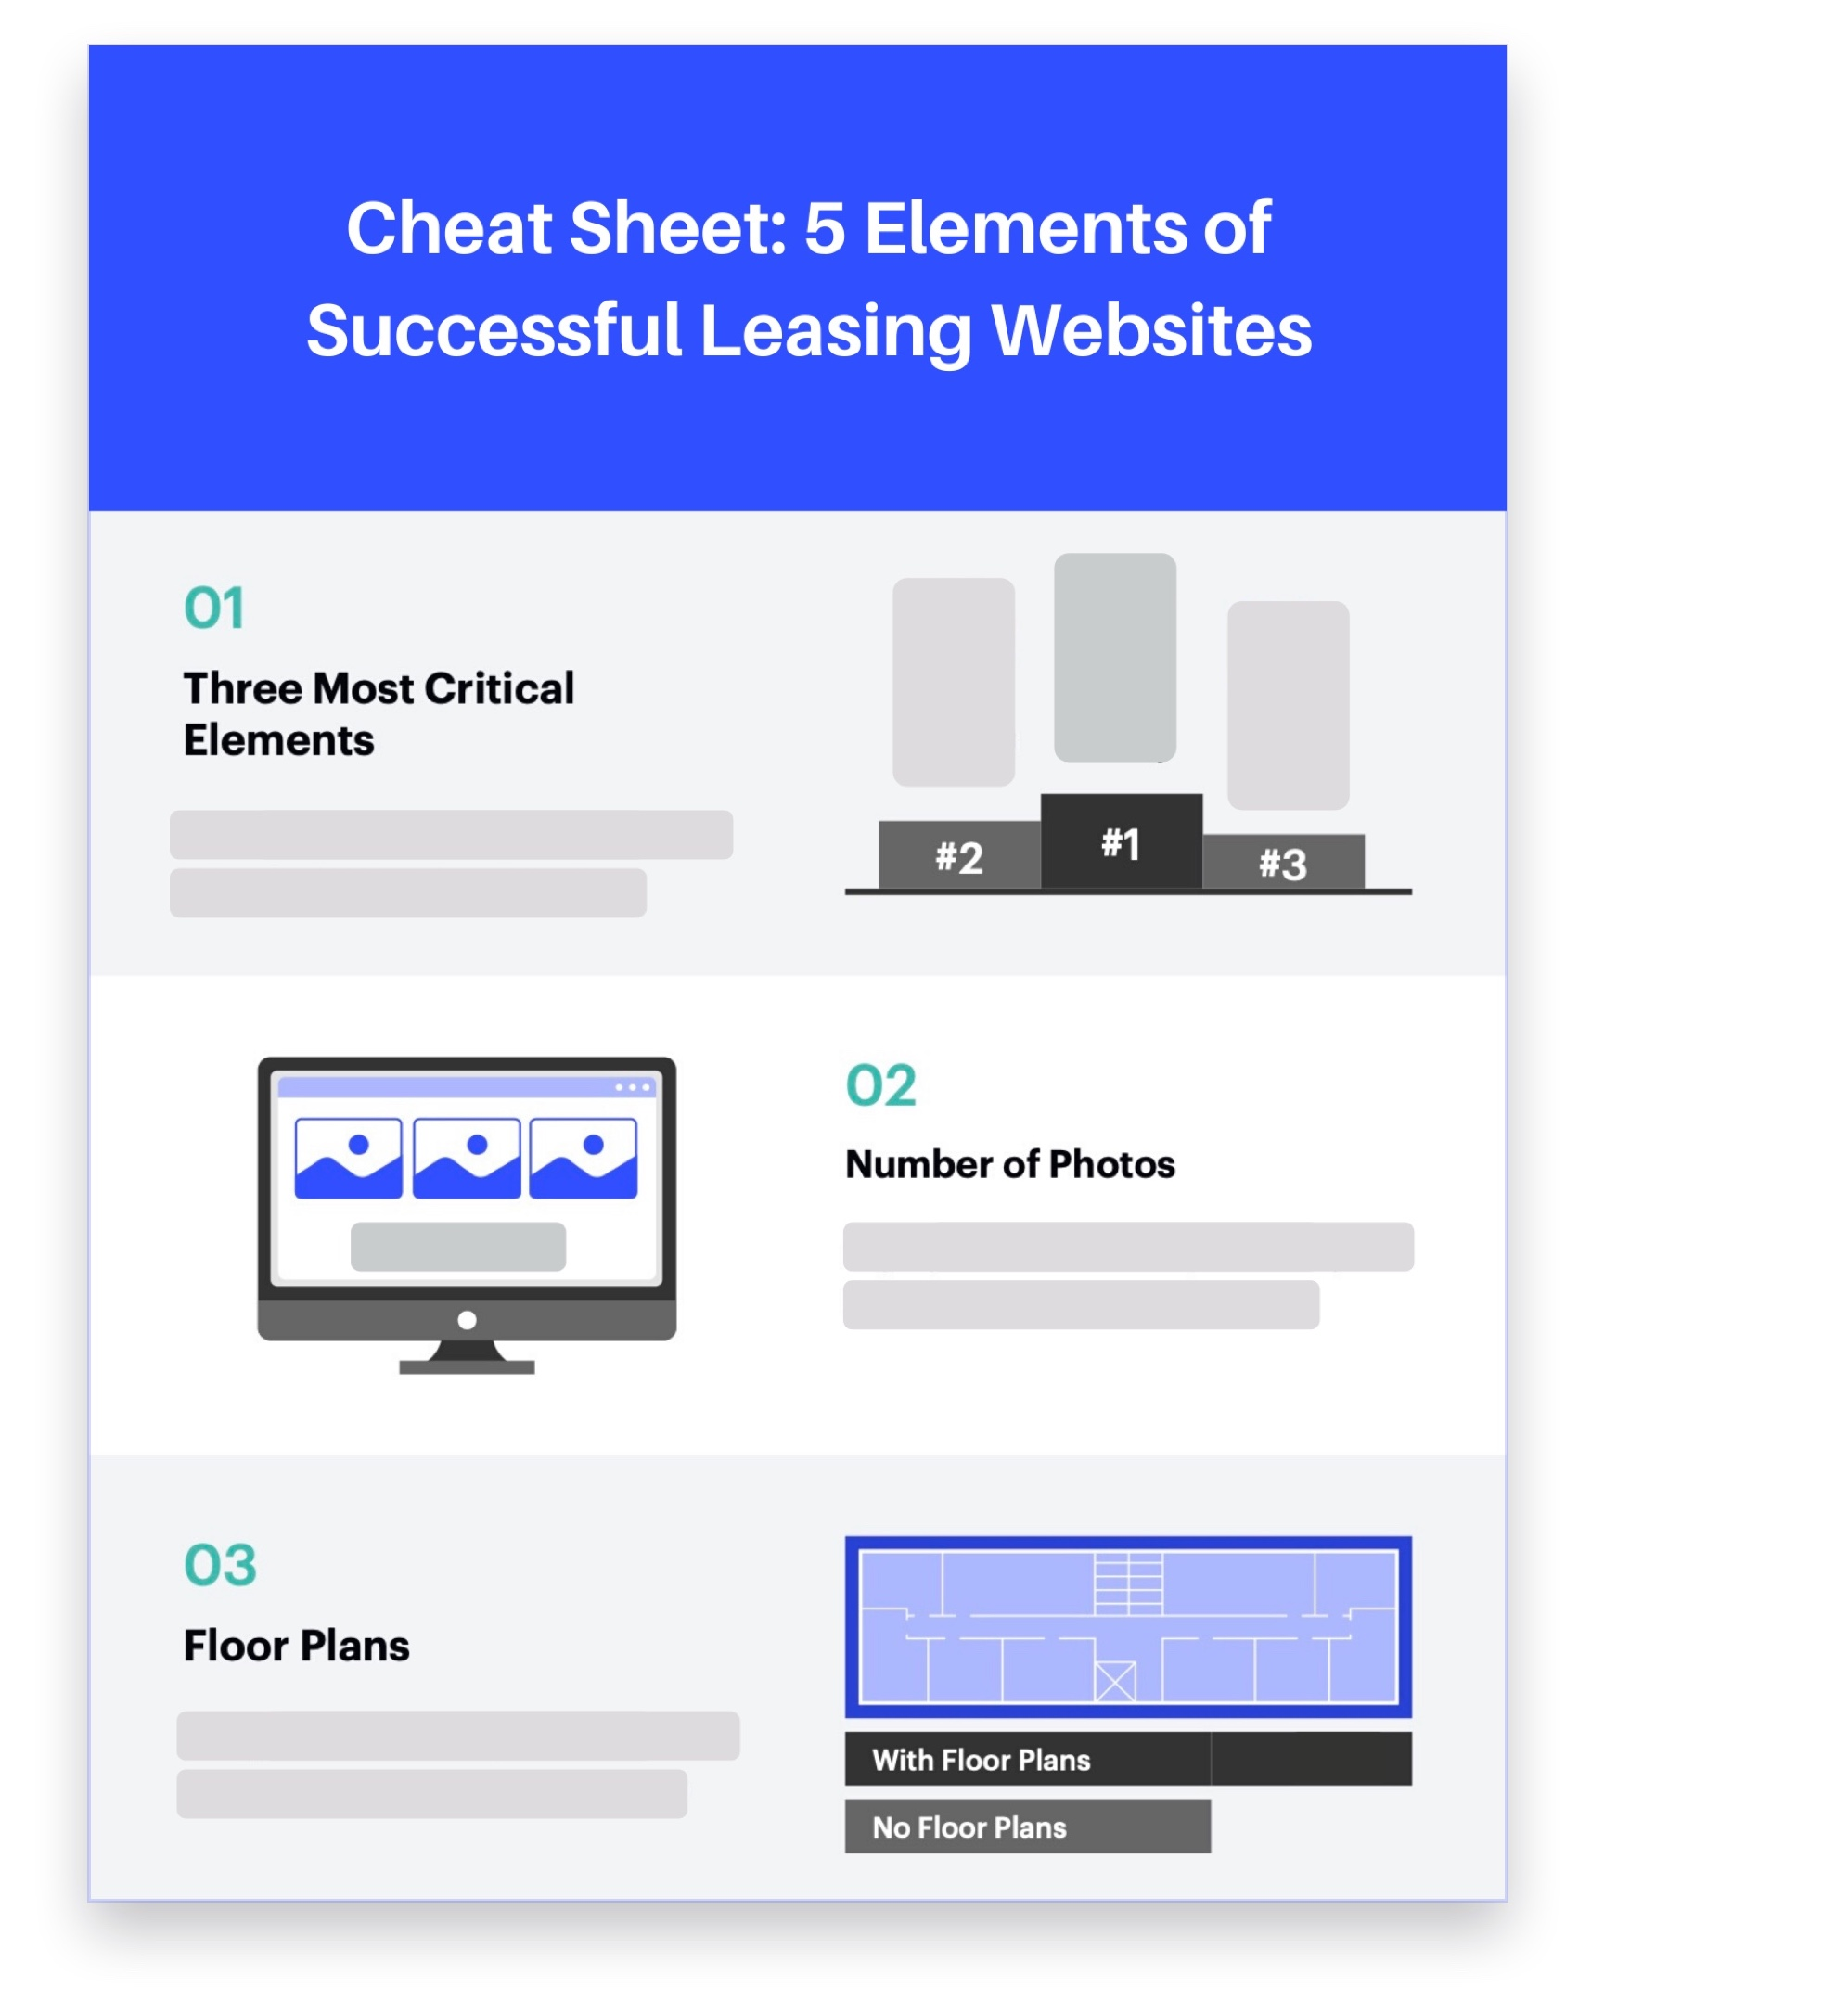 Cheat Sheet: 5 Elements of Successful Leasing Websites